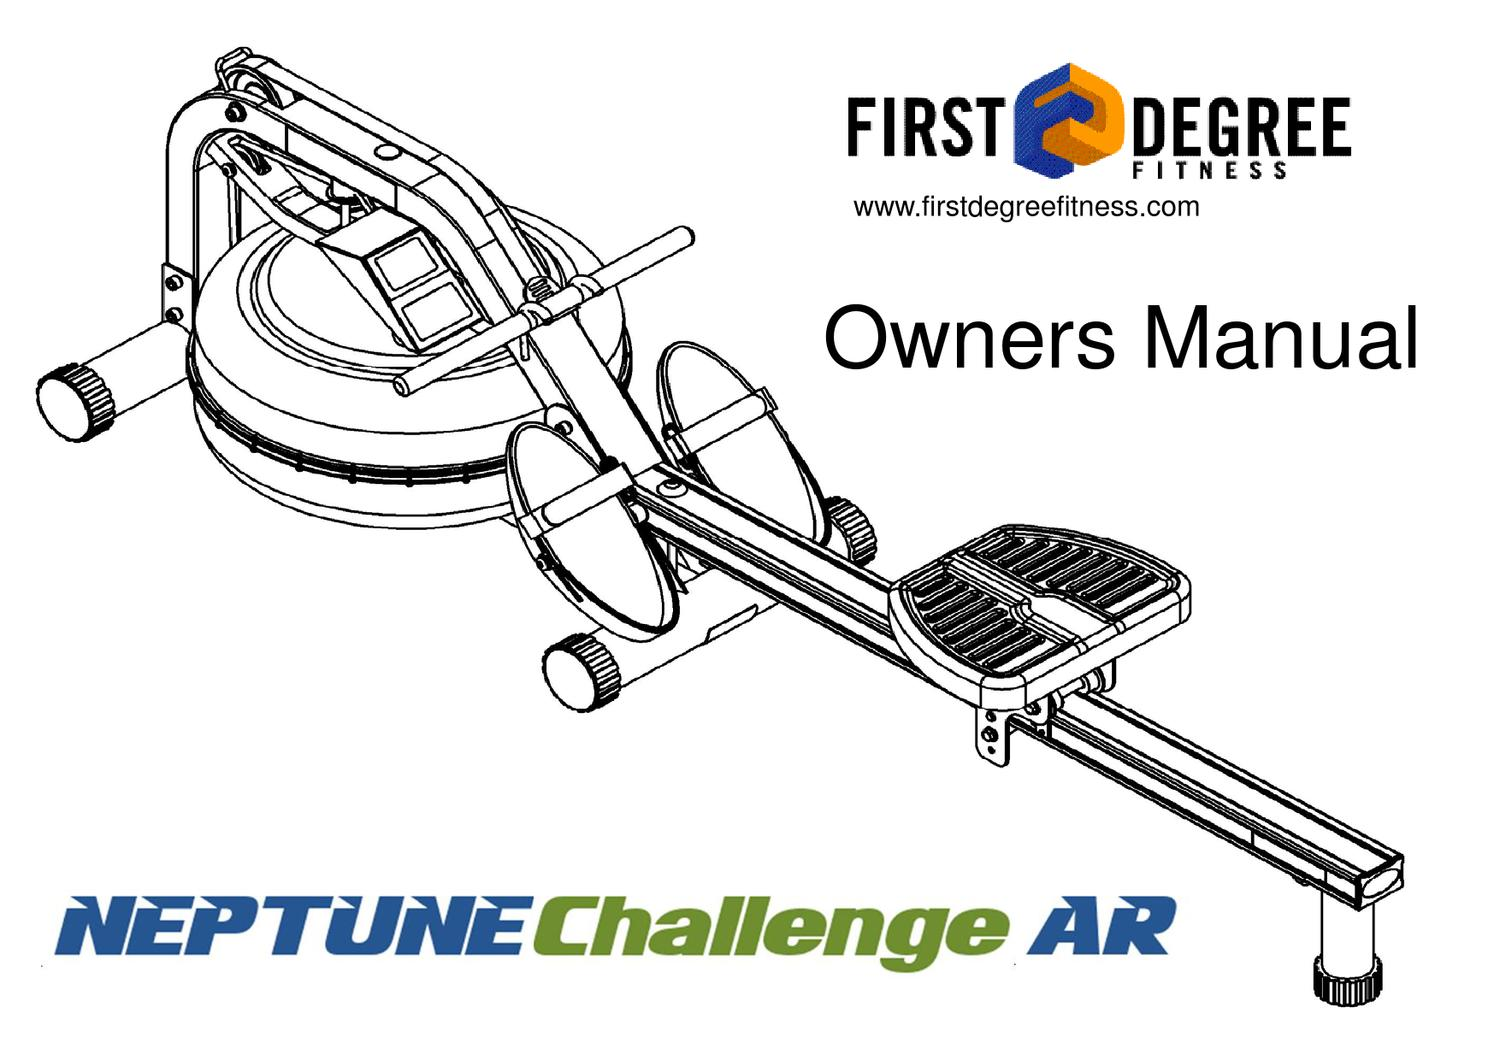 Ar 10 Exploded Parts Diagram Electrical Wiring Dpms Schematics User Manual Neptune Challenge Rower By Fitnessdigital Lr 308 List